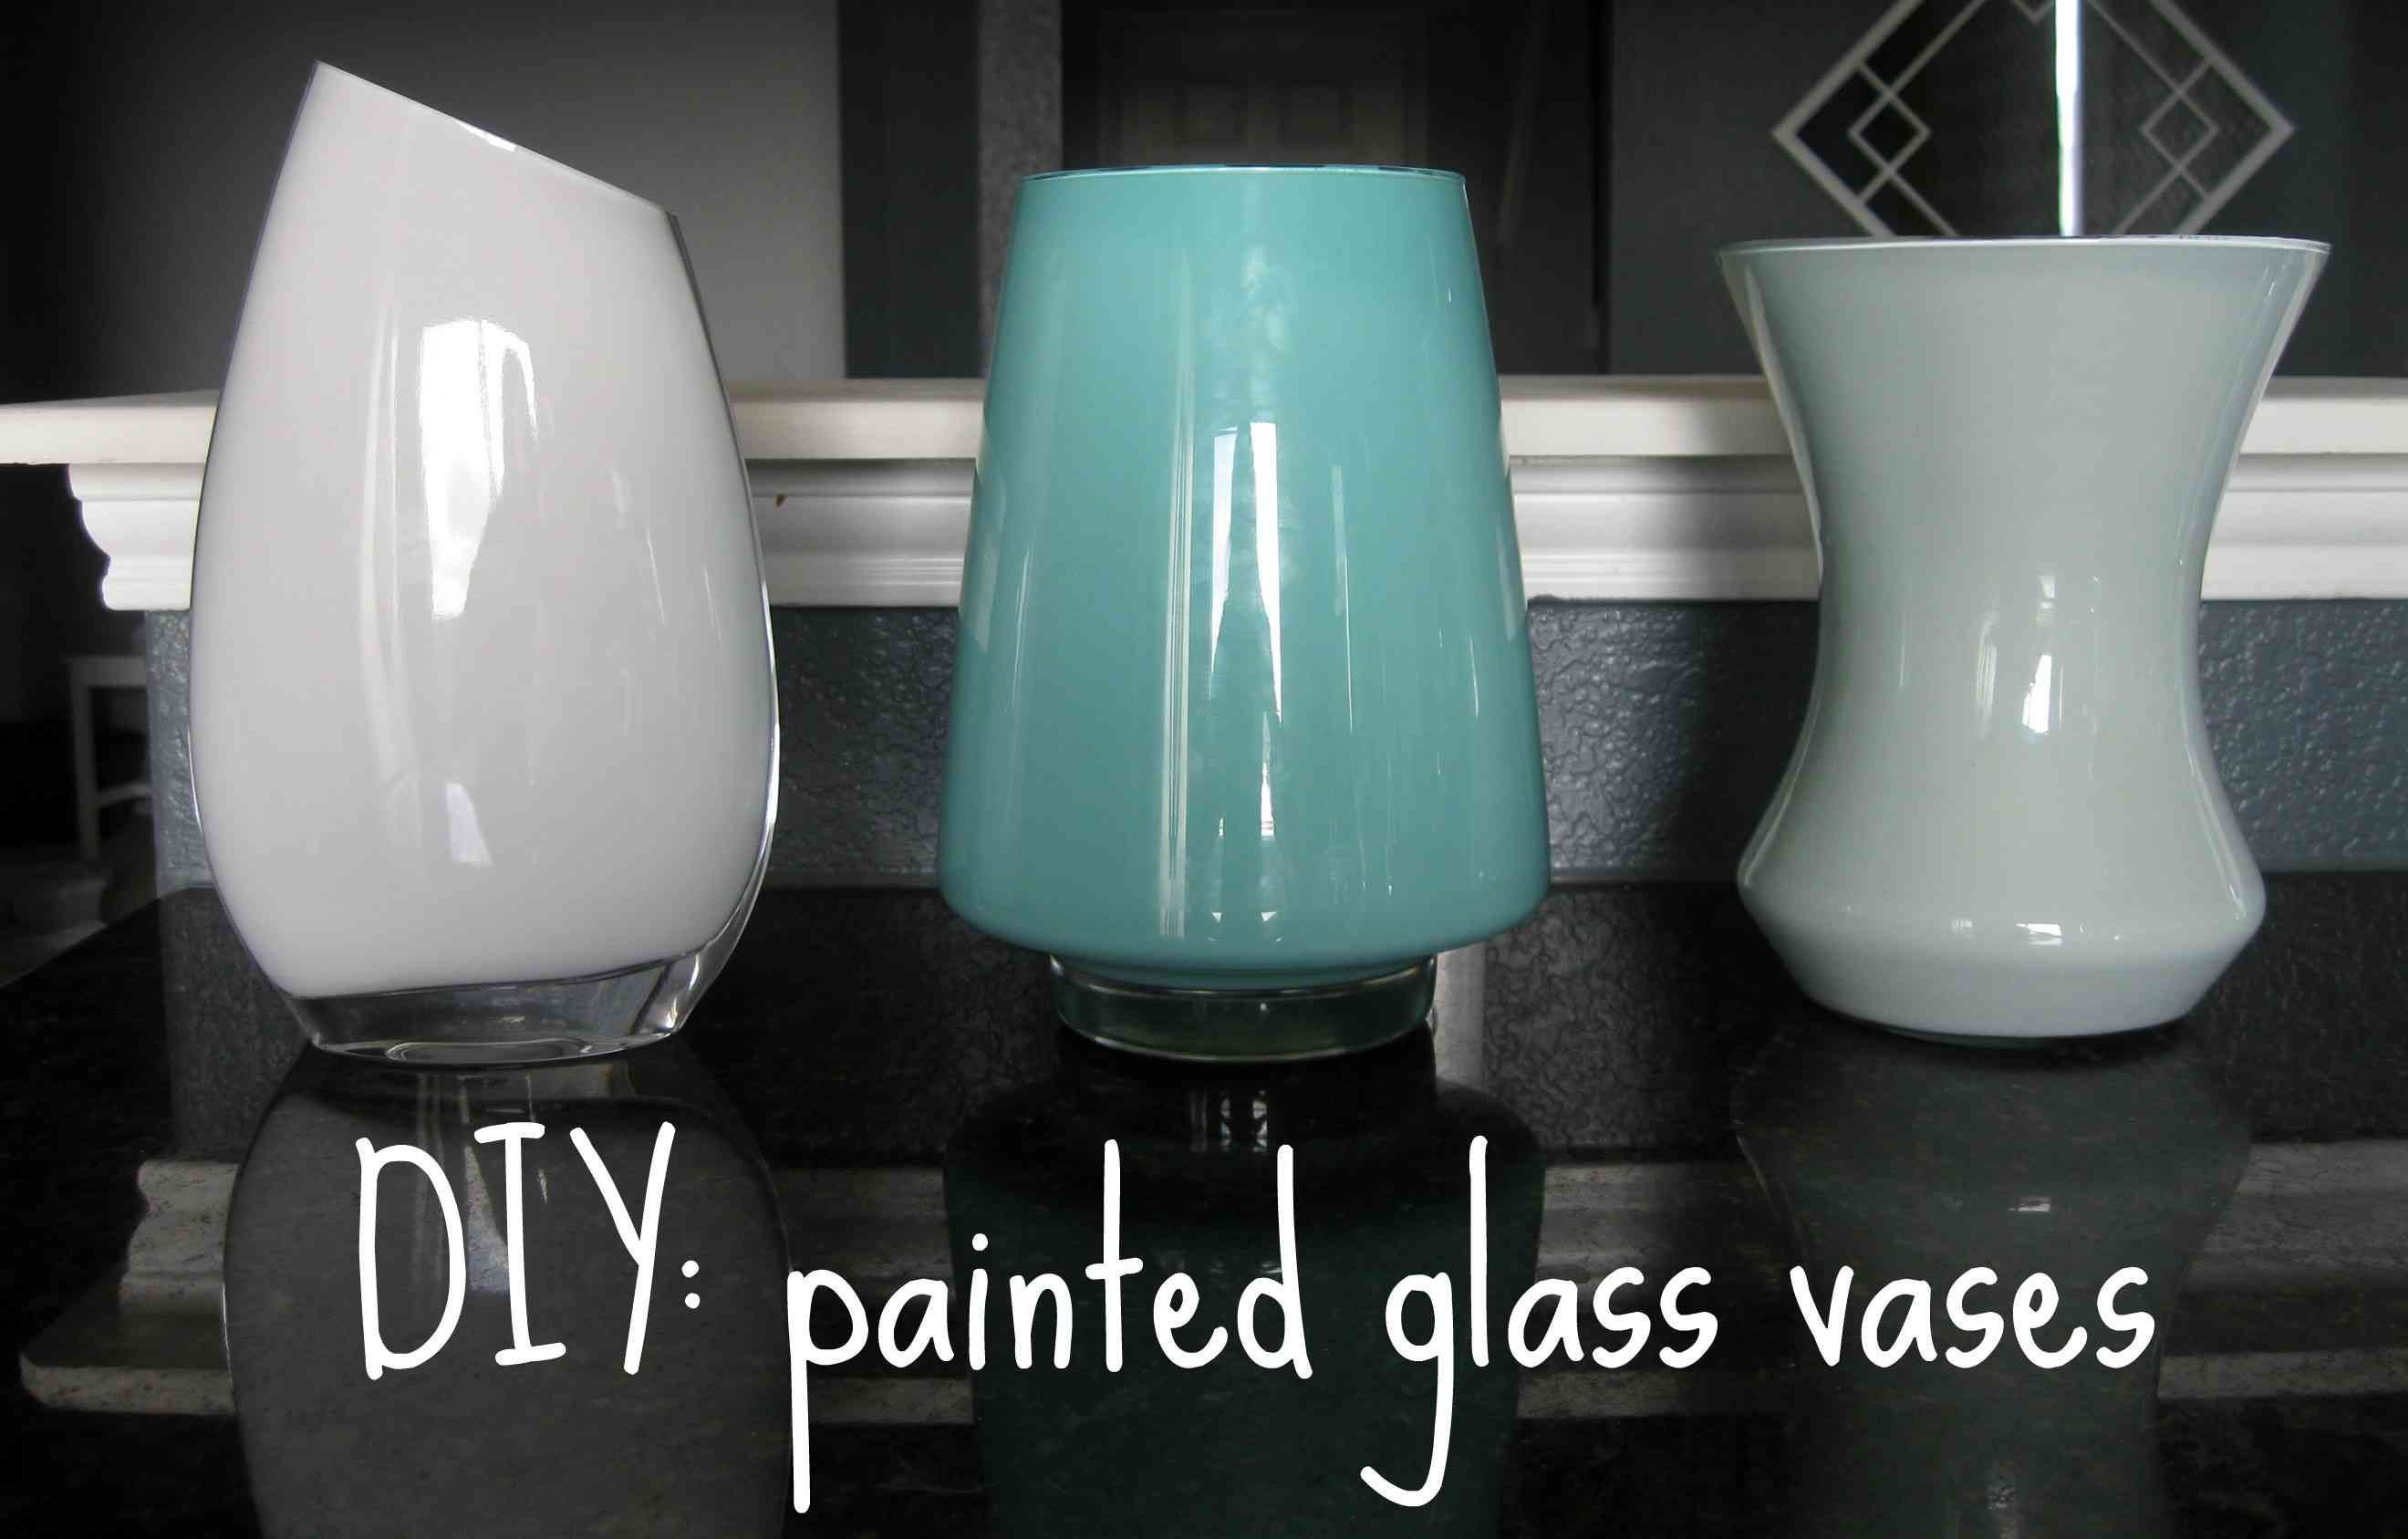 17 Famous Different Vase Shapes 2021 free download different vase shapes of 23 blue crystal vase the weekly world within diy painted glass vasesh vases how to paint vasesi 0d via conejita info